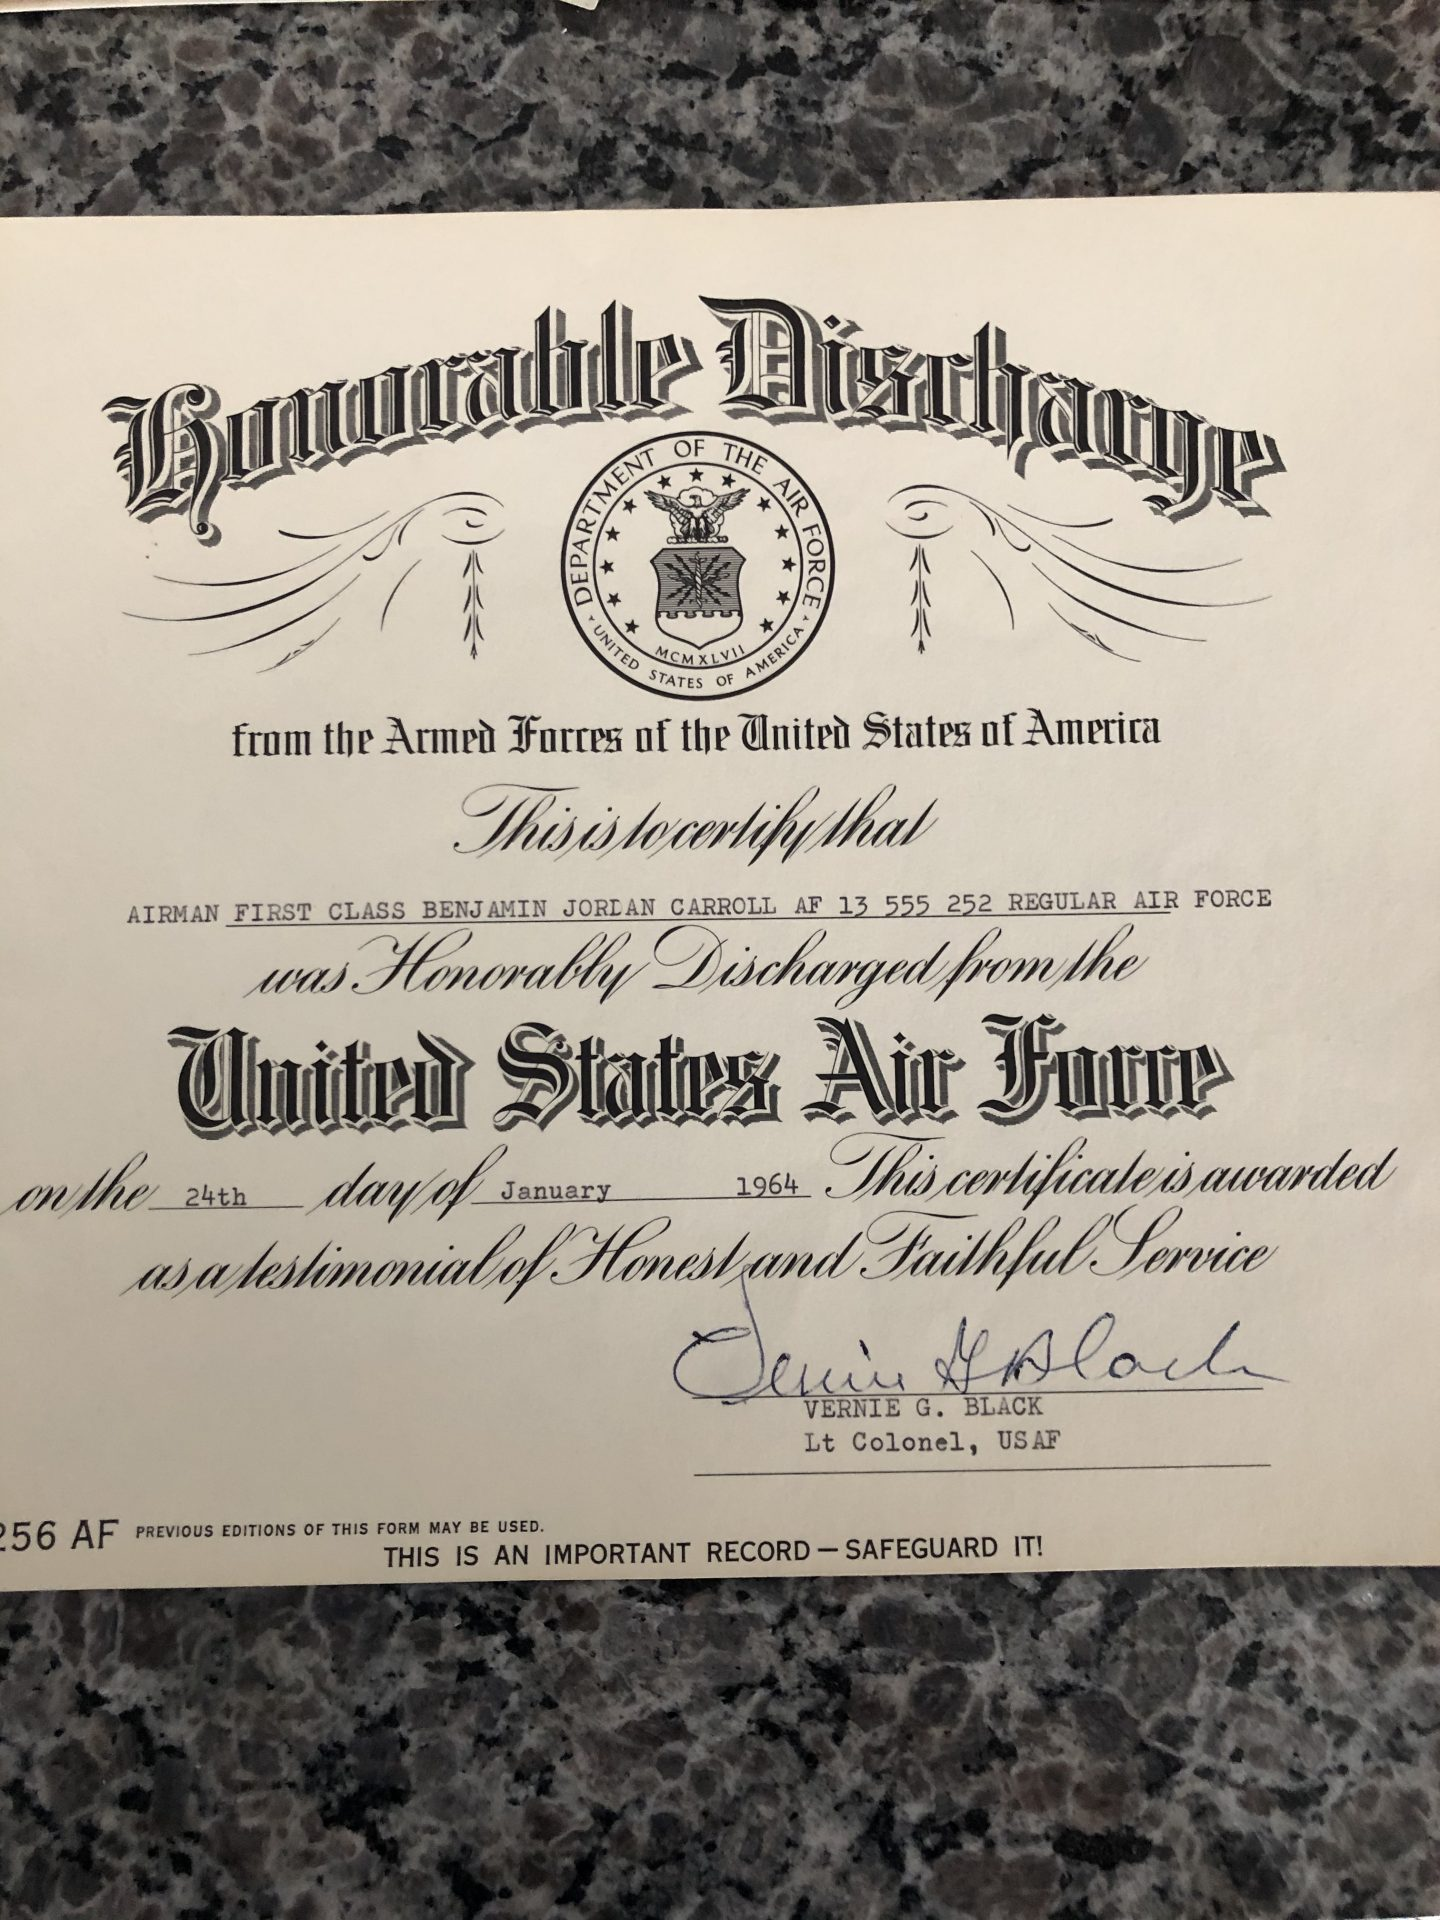 2 of 2 honorable discharges.<br /> Show off, I only got one! LOL